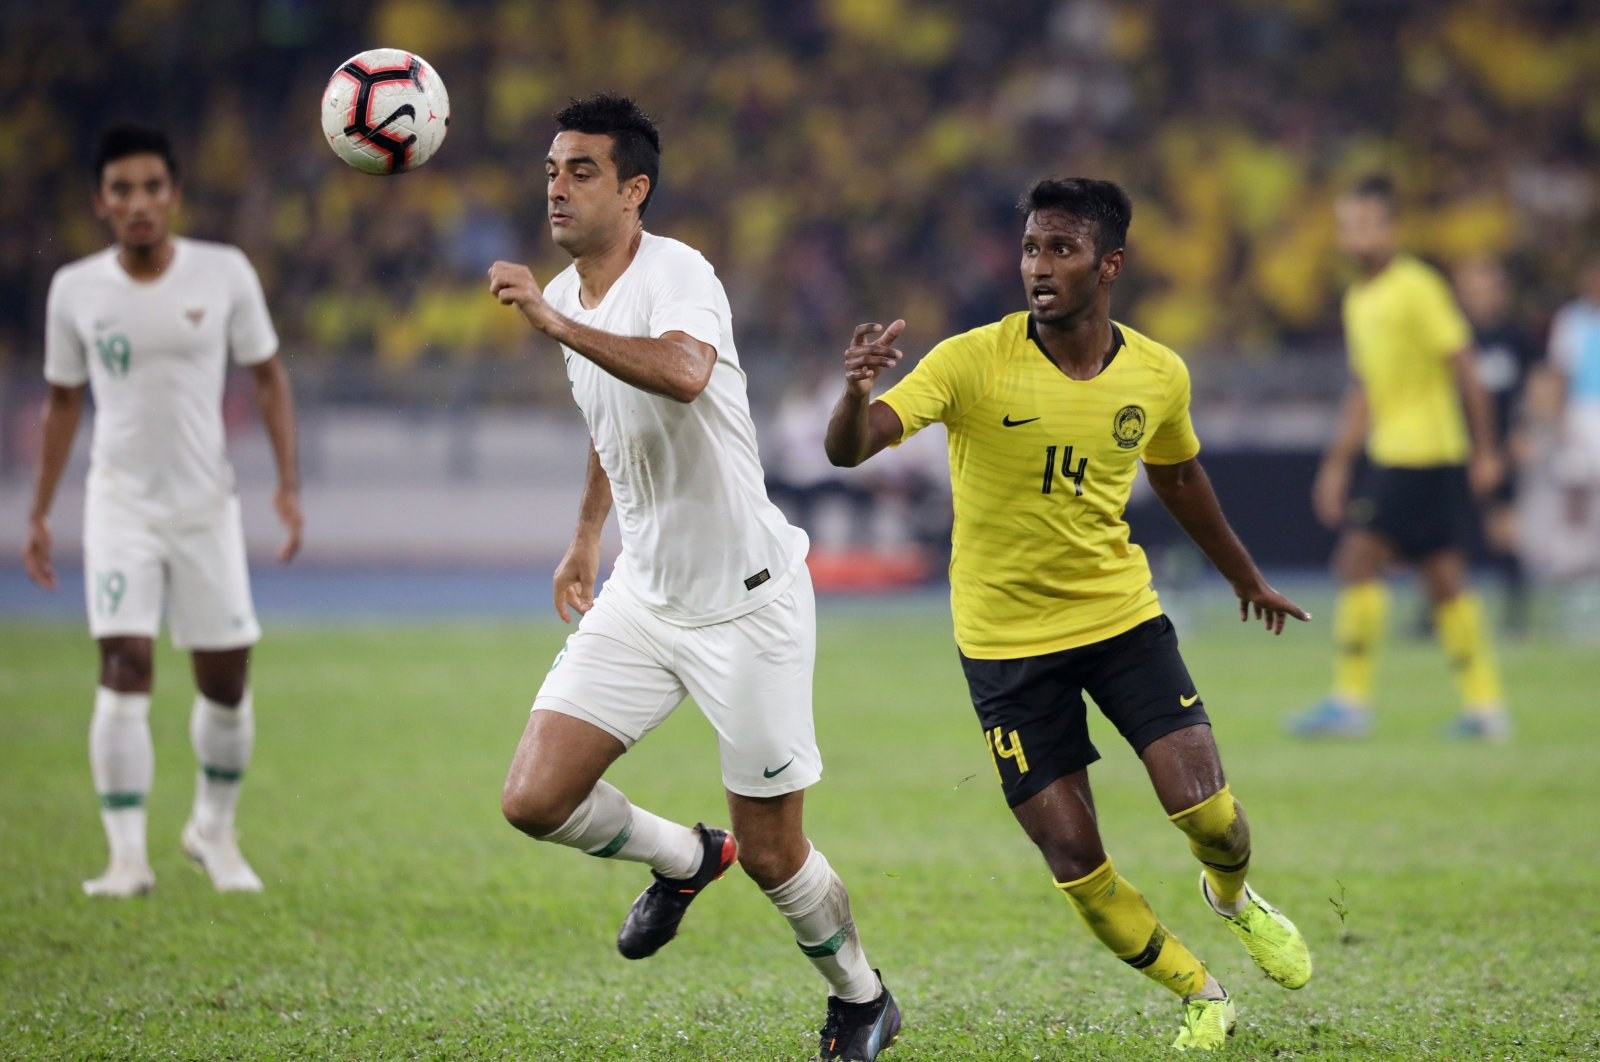 Malaysia's Syamer Abba (R) in action against Indonesia in a World Cup 2022 Qualifier match at Bukit Jalil National Stadium, Kuala Lumpur, Malaysia, Nov. 19, 2019. (Reuters Photo)